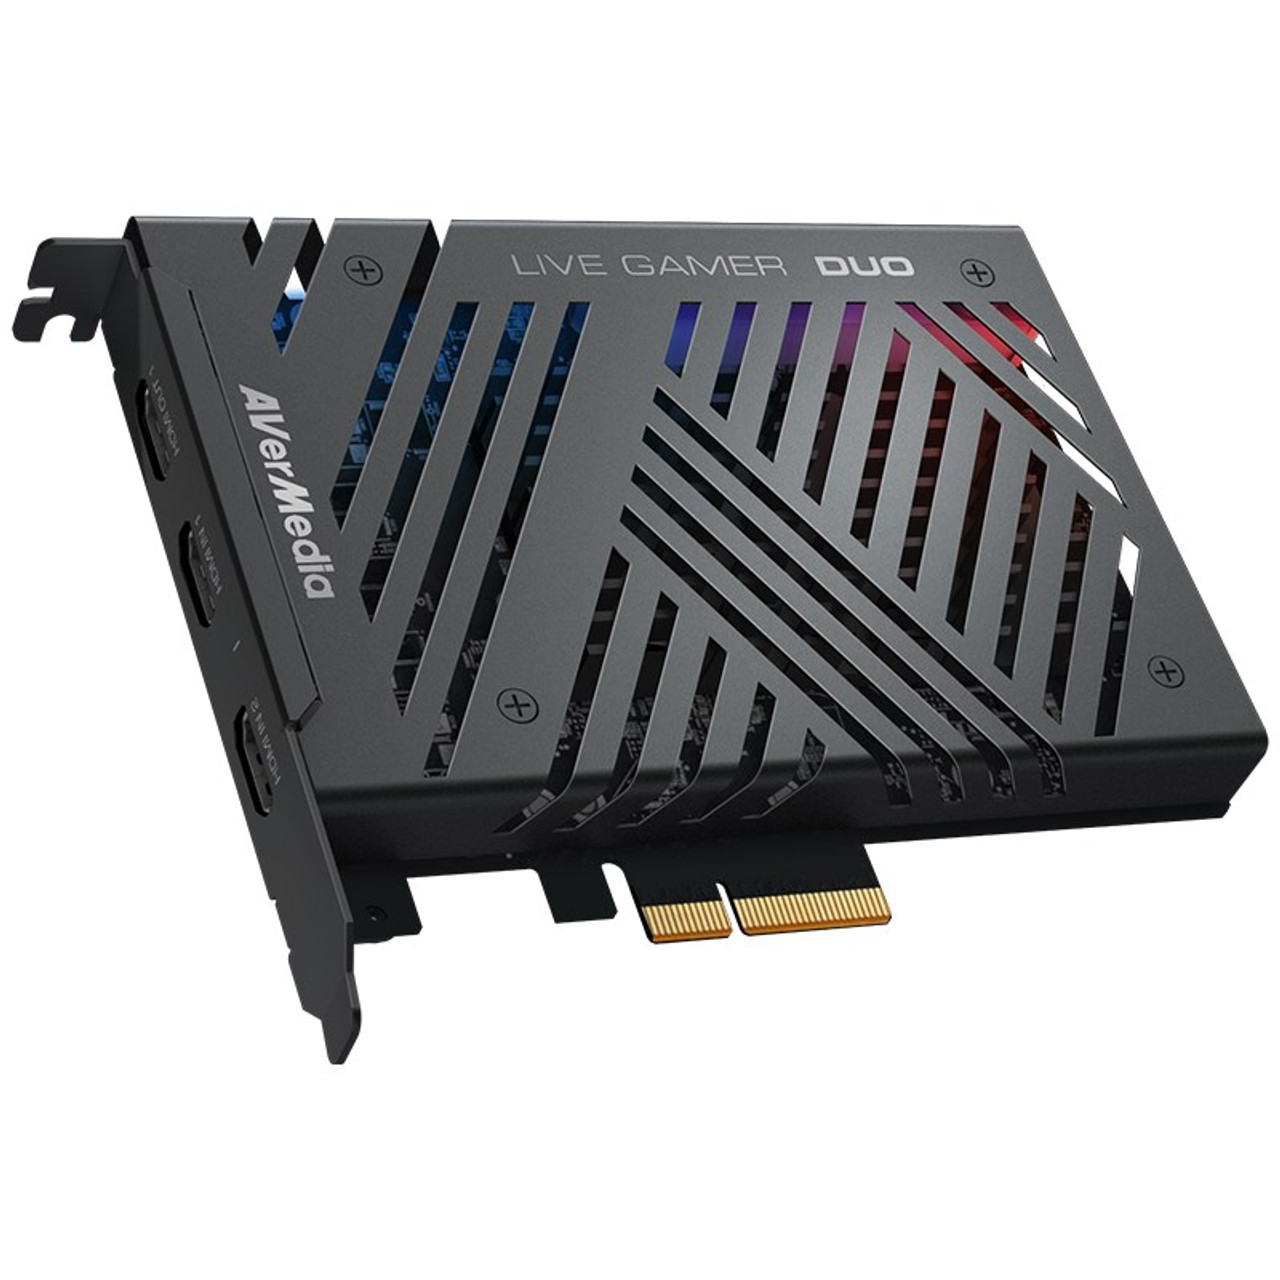 Image for AVerMedia GC570D Live Gamer Duo Dual HDMI 1080P 60FPS Video Capture Card CX Computer Superstore